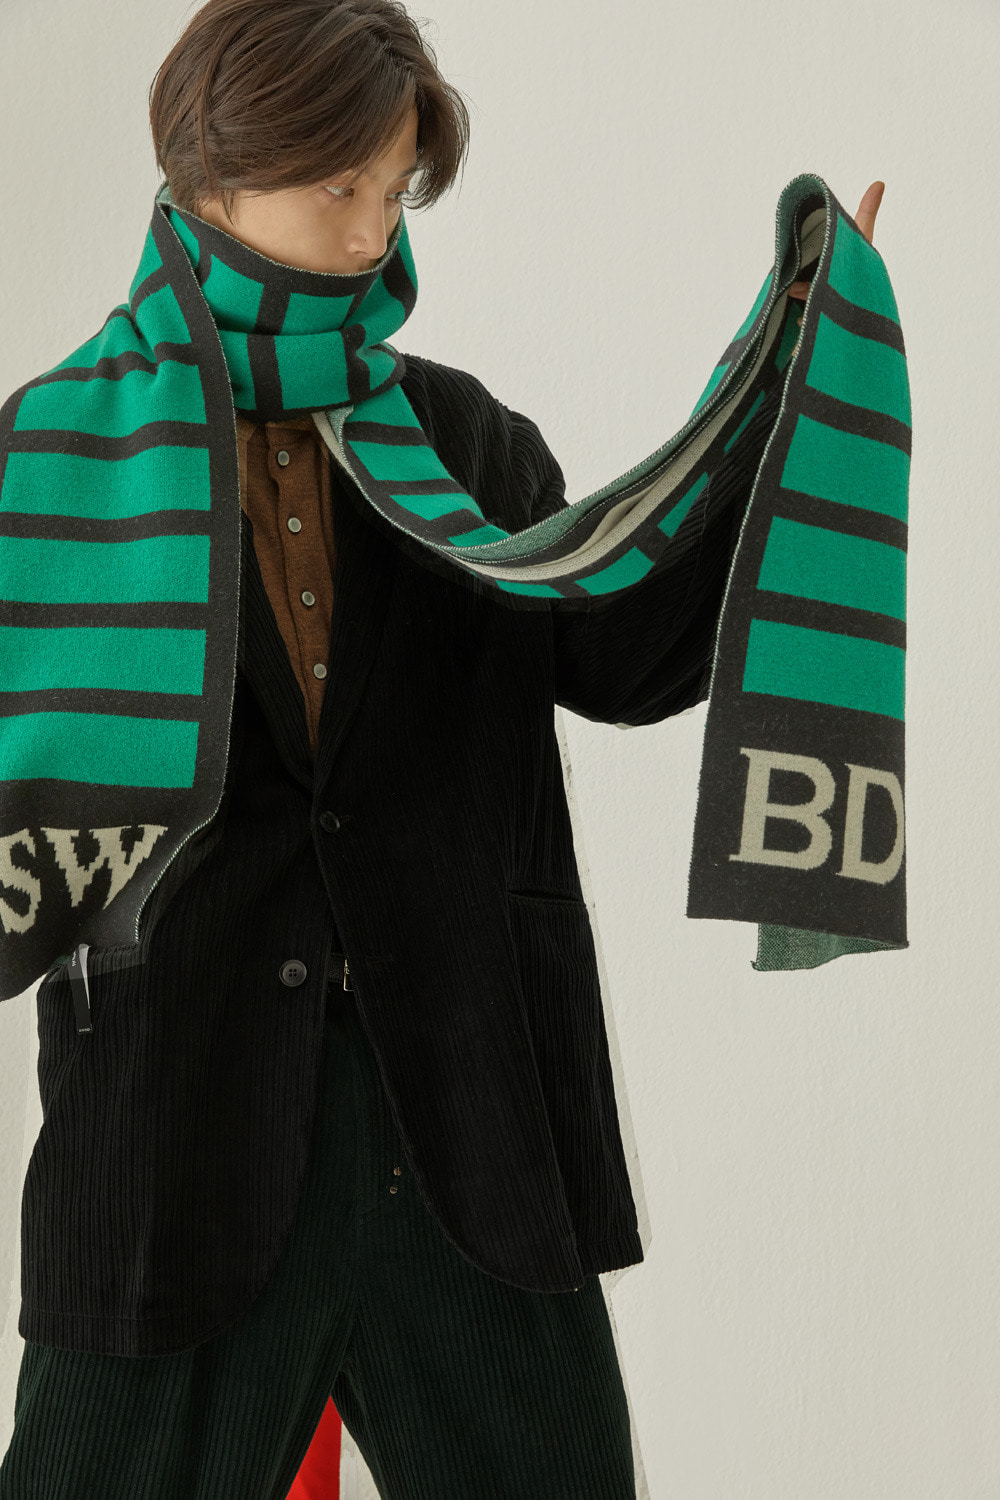 SWBD LAYER MUFFLER (GREEN)